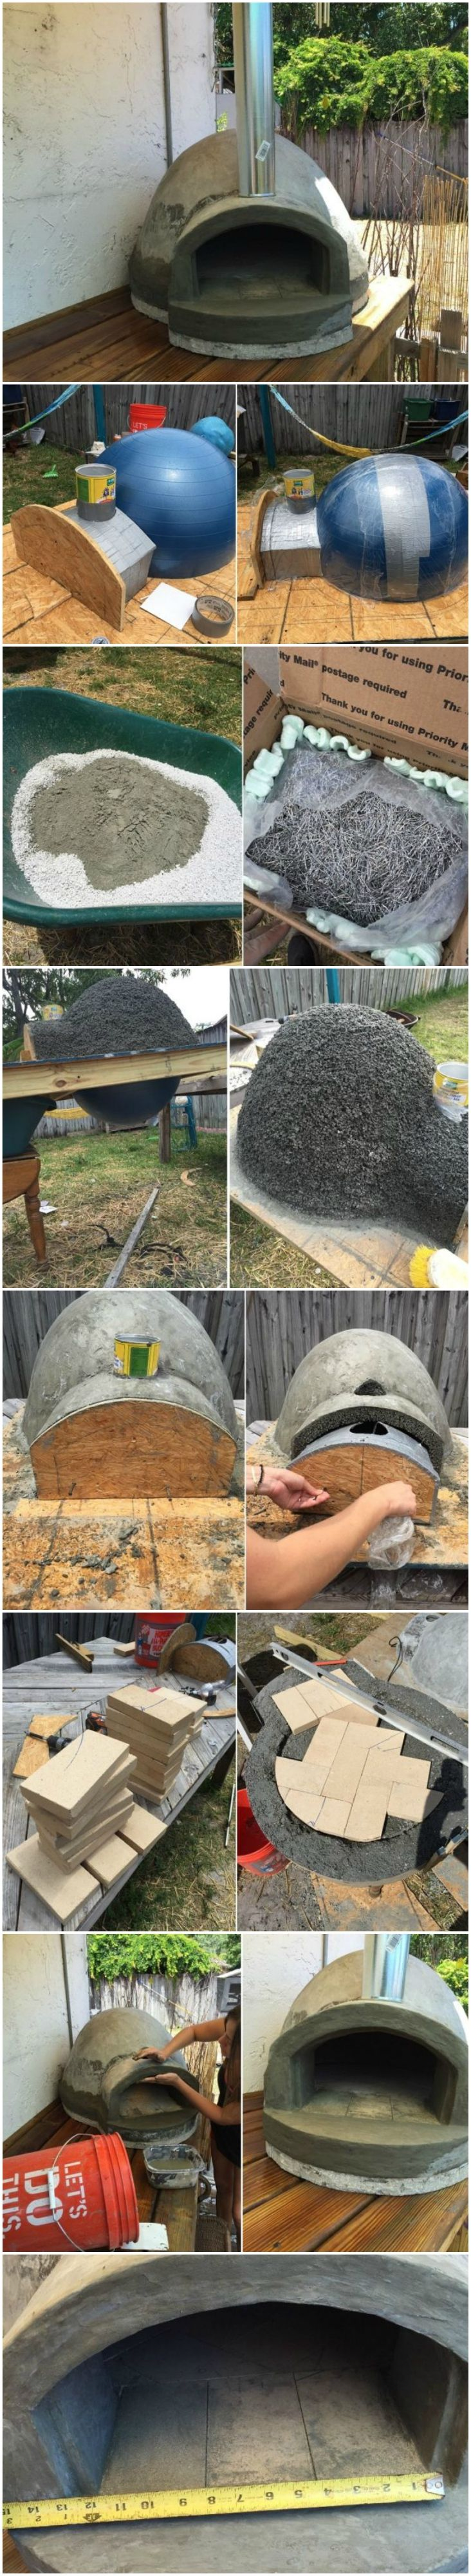 Mediterranean wood fired pizza oven - Wood Fired Pizza Oven Made With An Exercise Ball For 135